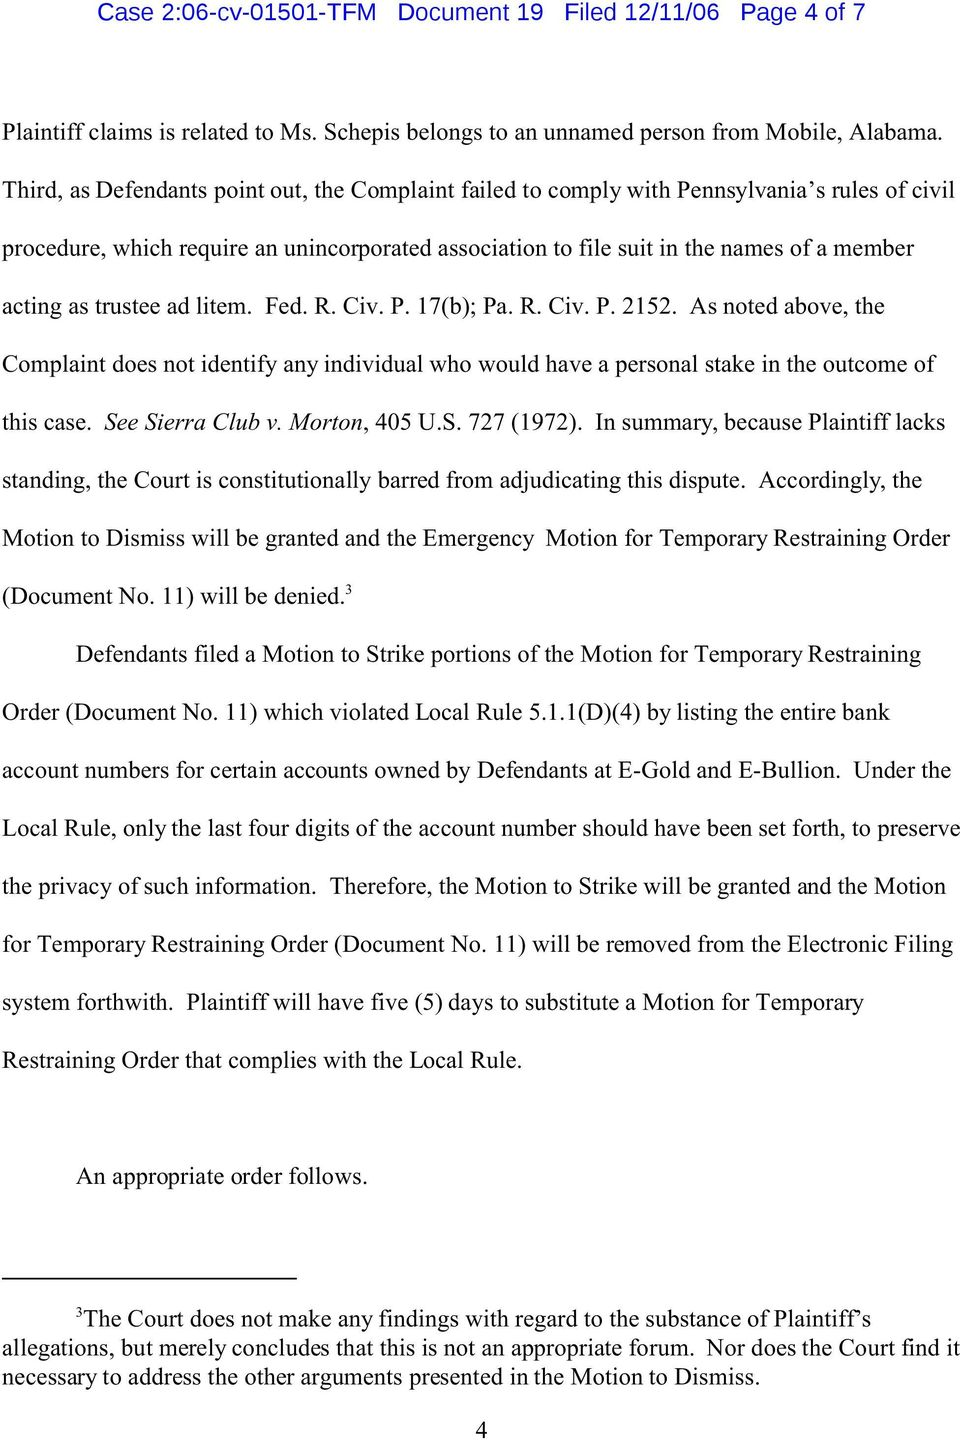 as trustee ad litem. Fed. R. Civ. P. 17(b; Pa. R. Civ. P. 2152. As noted above, the Complaint does not identify any individual who would have a personal stake in the outcome of this case.